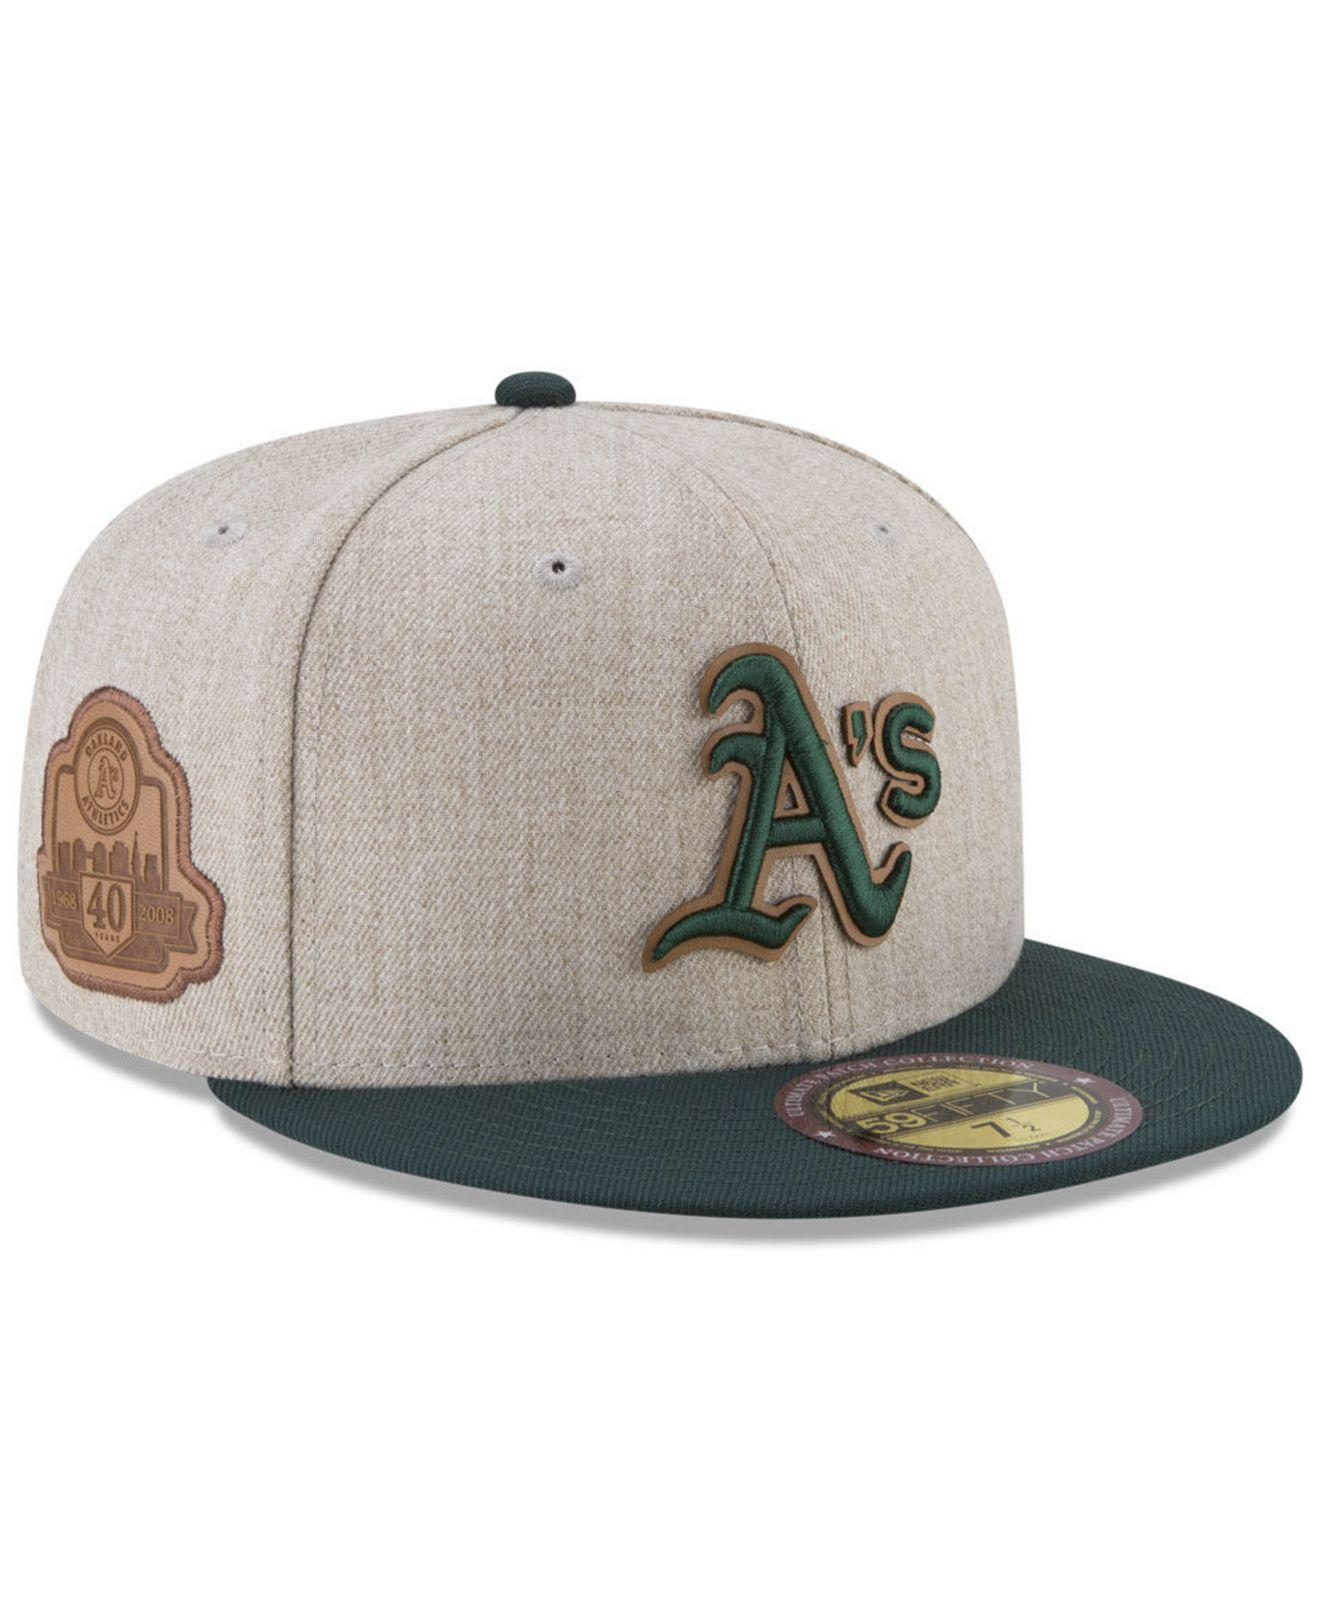 separation shoes b0619 f3381 KTZ Oakland Athletics Leather Ultimate Patch Collection 59fifty ...